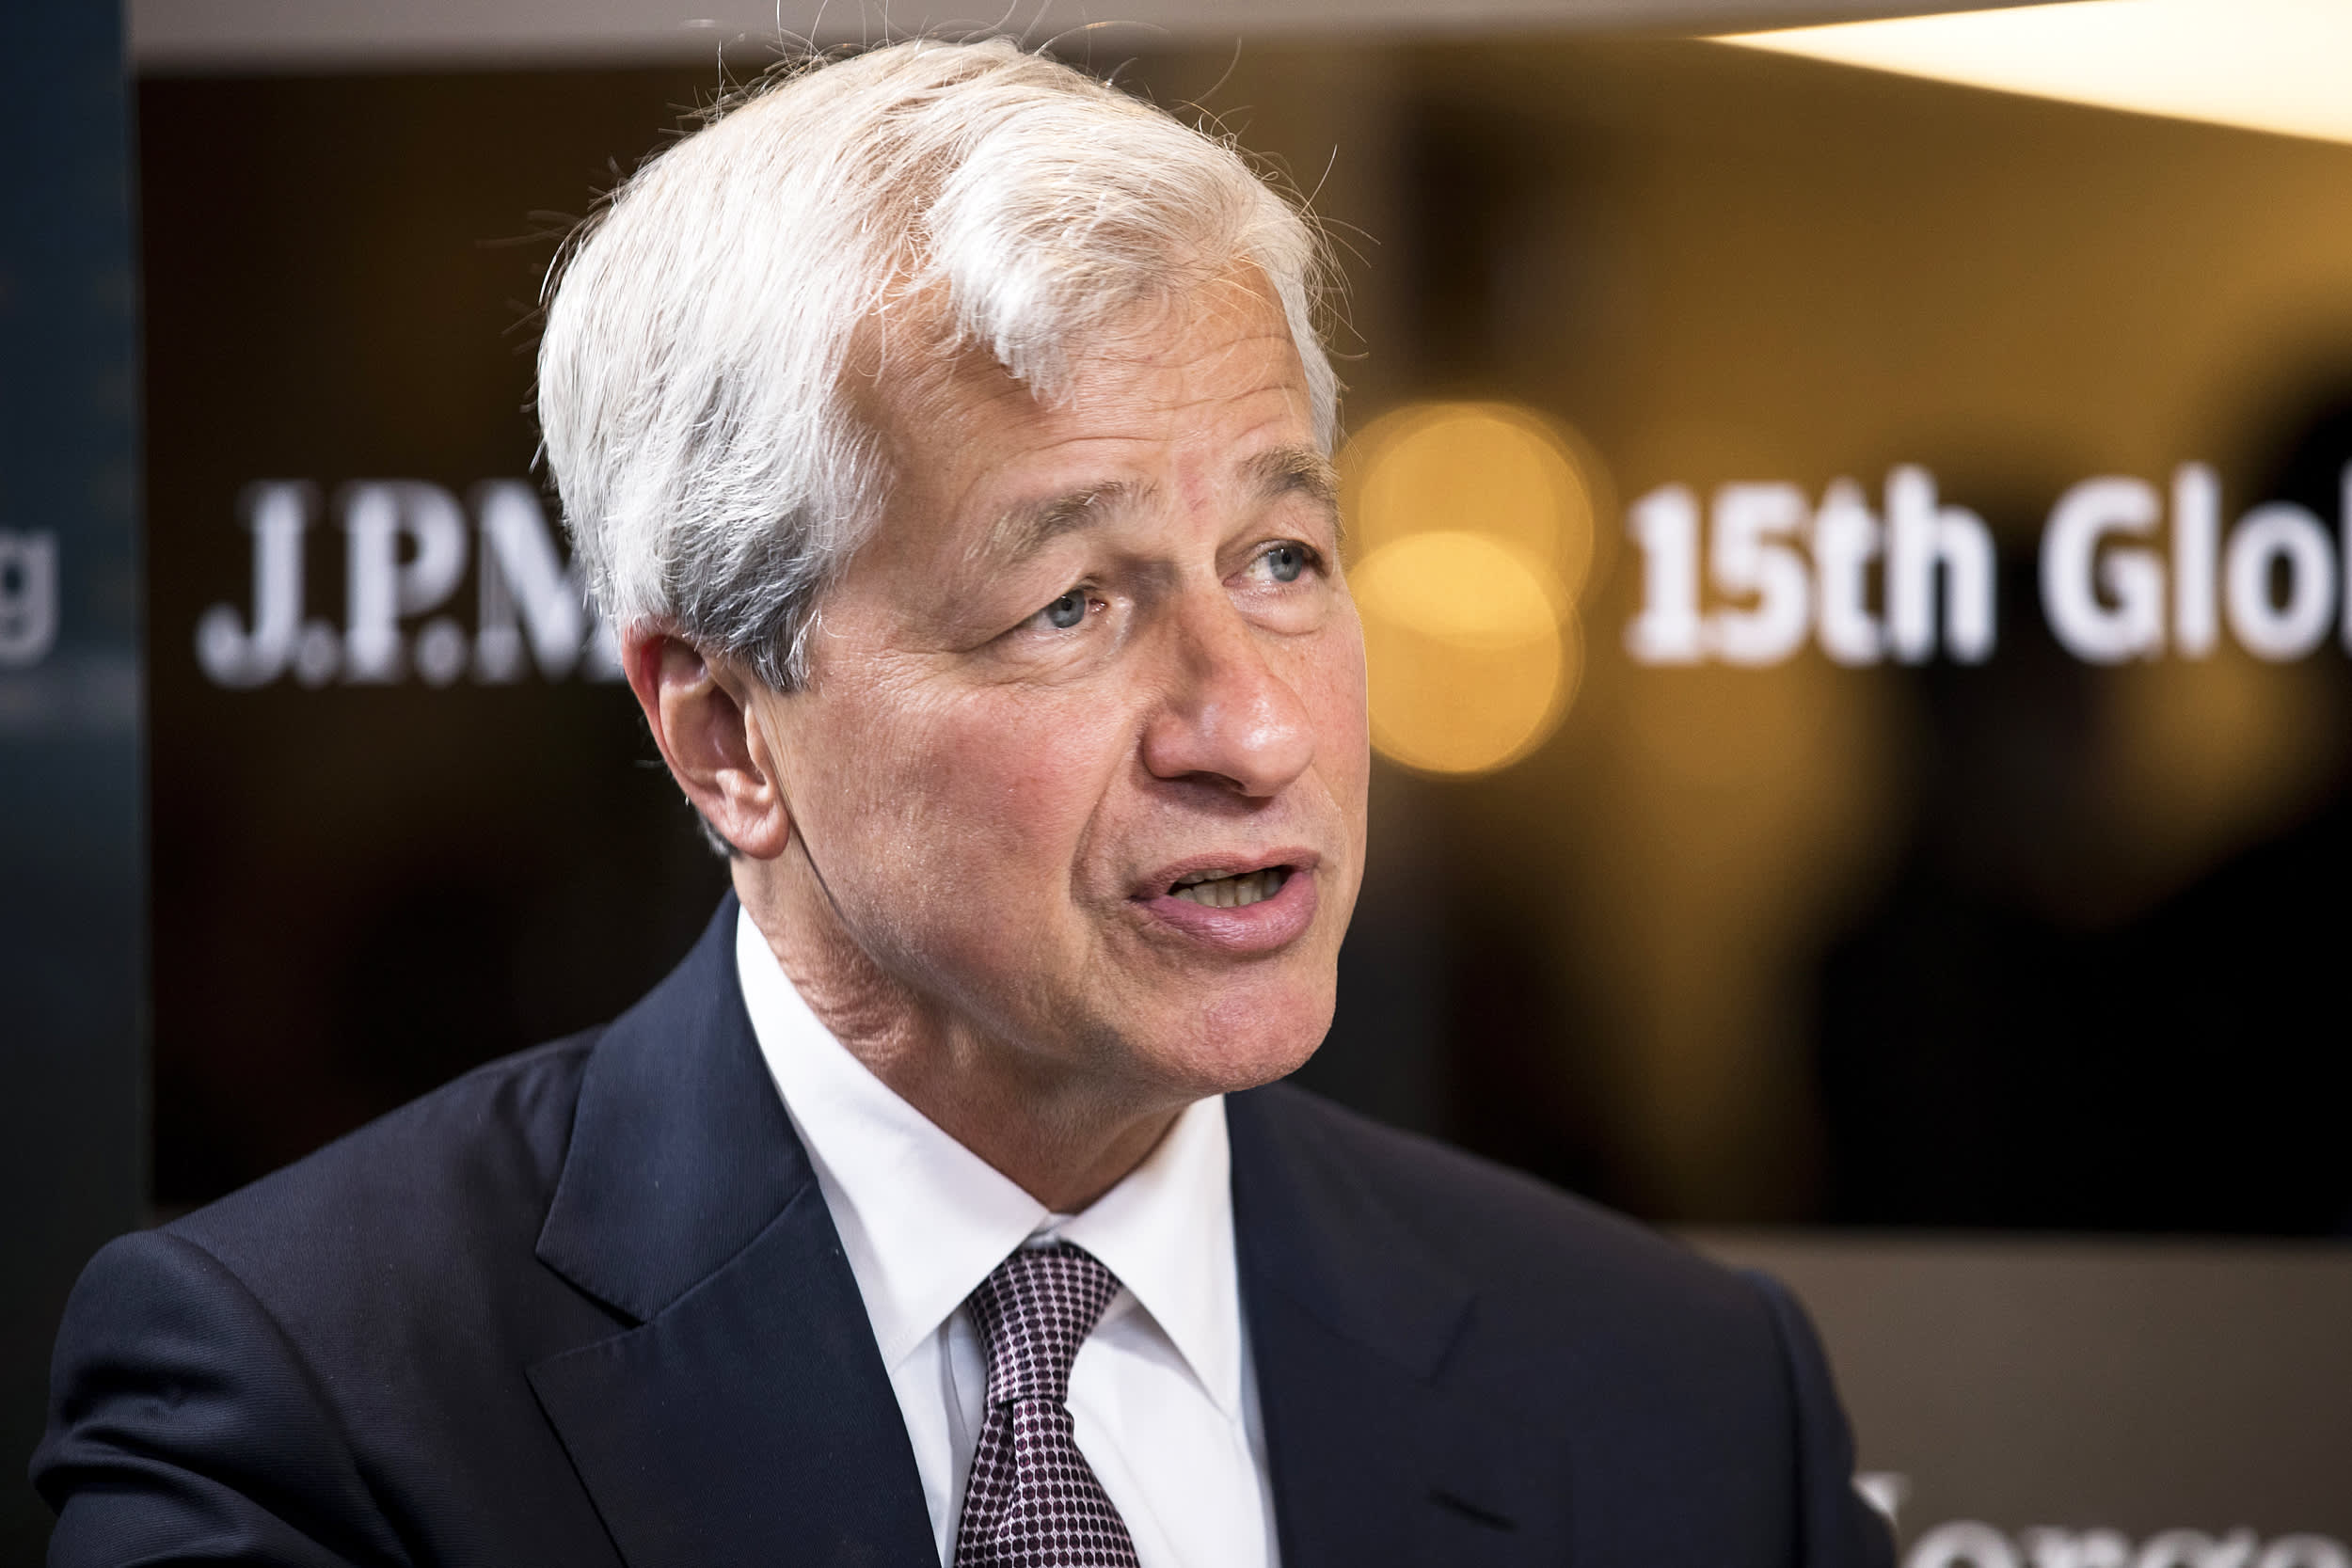 jamie-dimon-slams-state-and-local-tax-repeal-as-a-benefit-to-the-rich